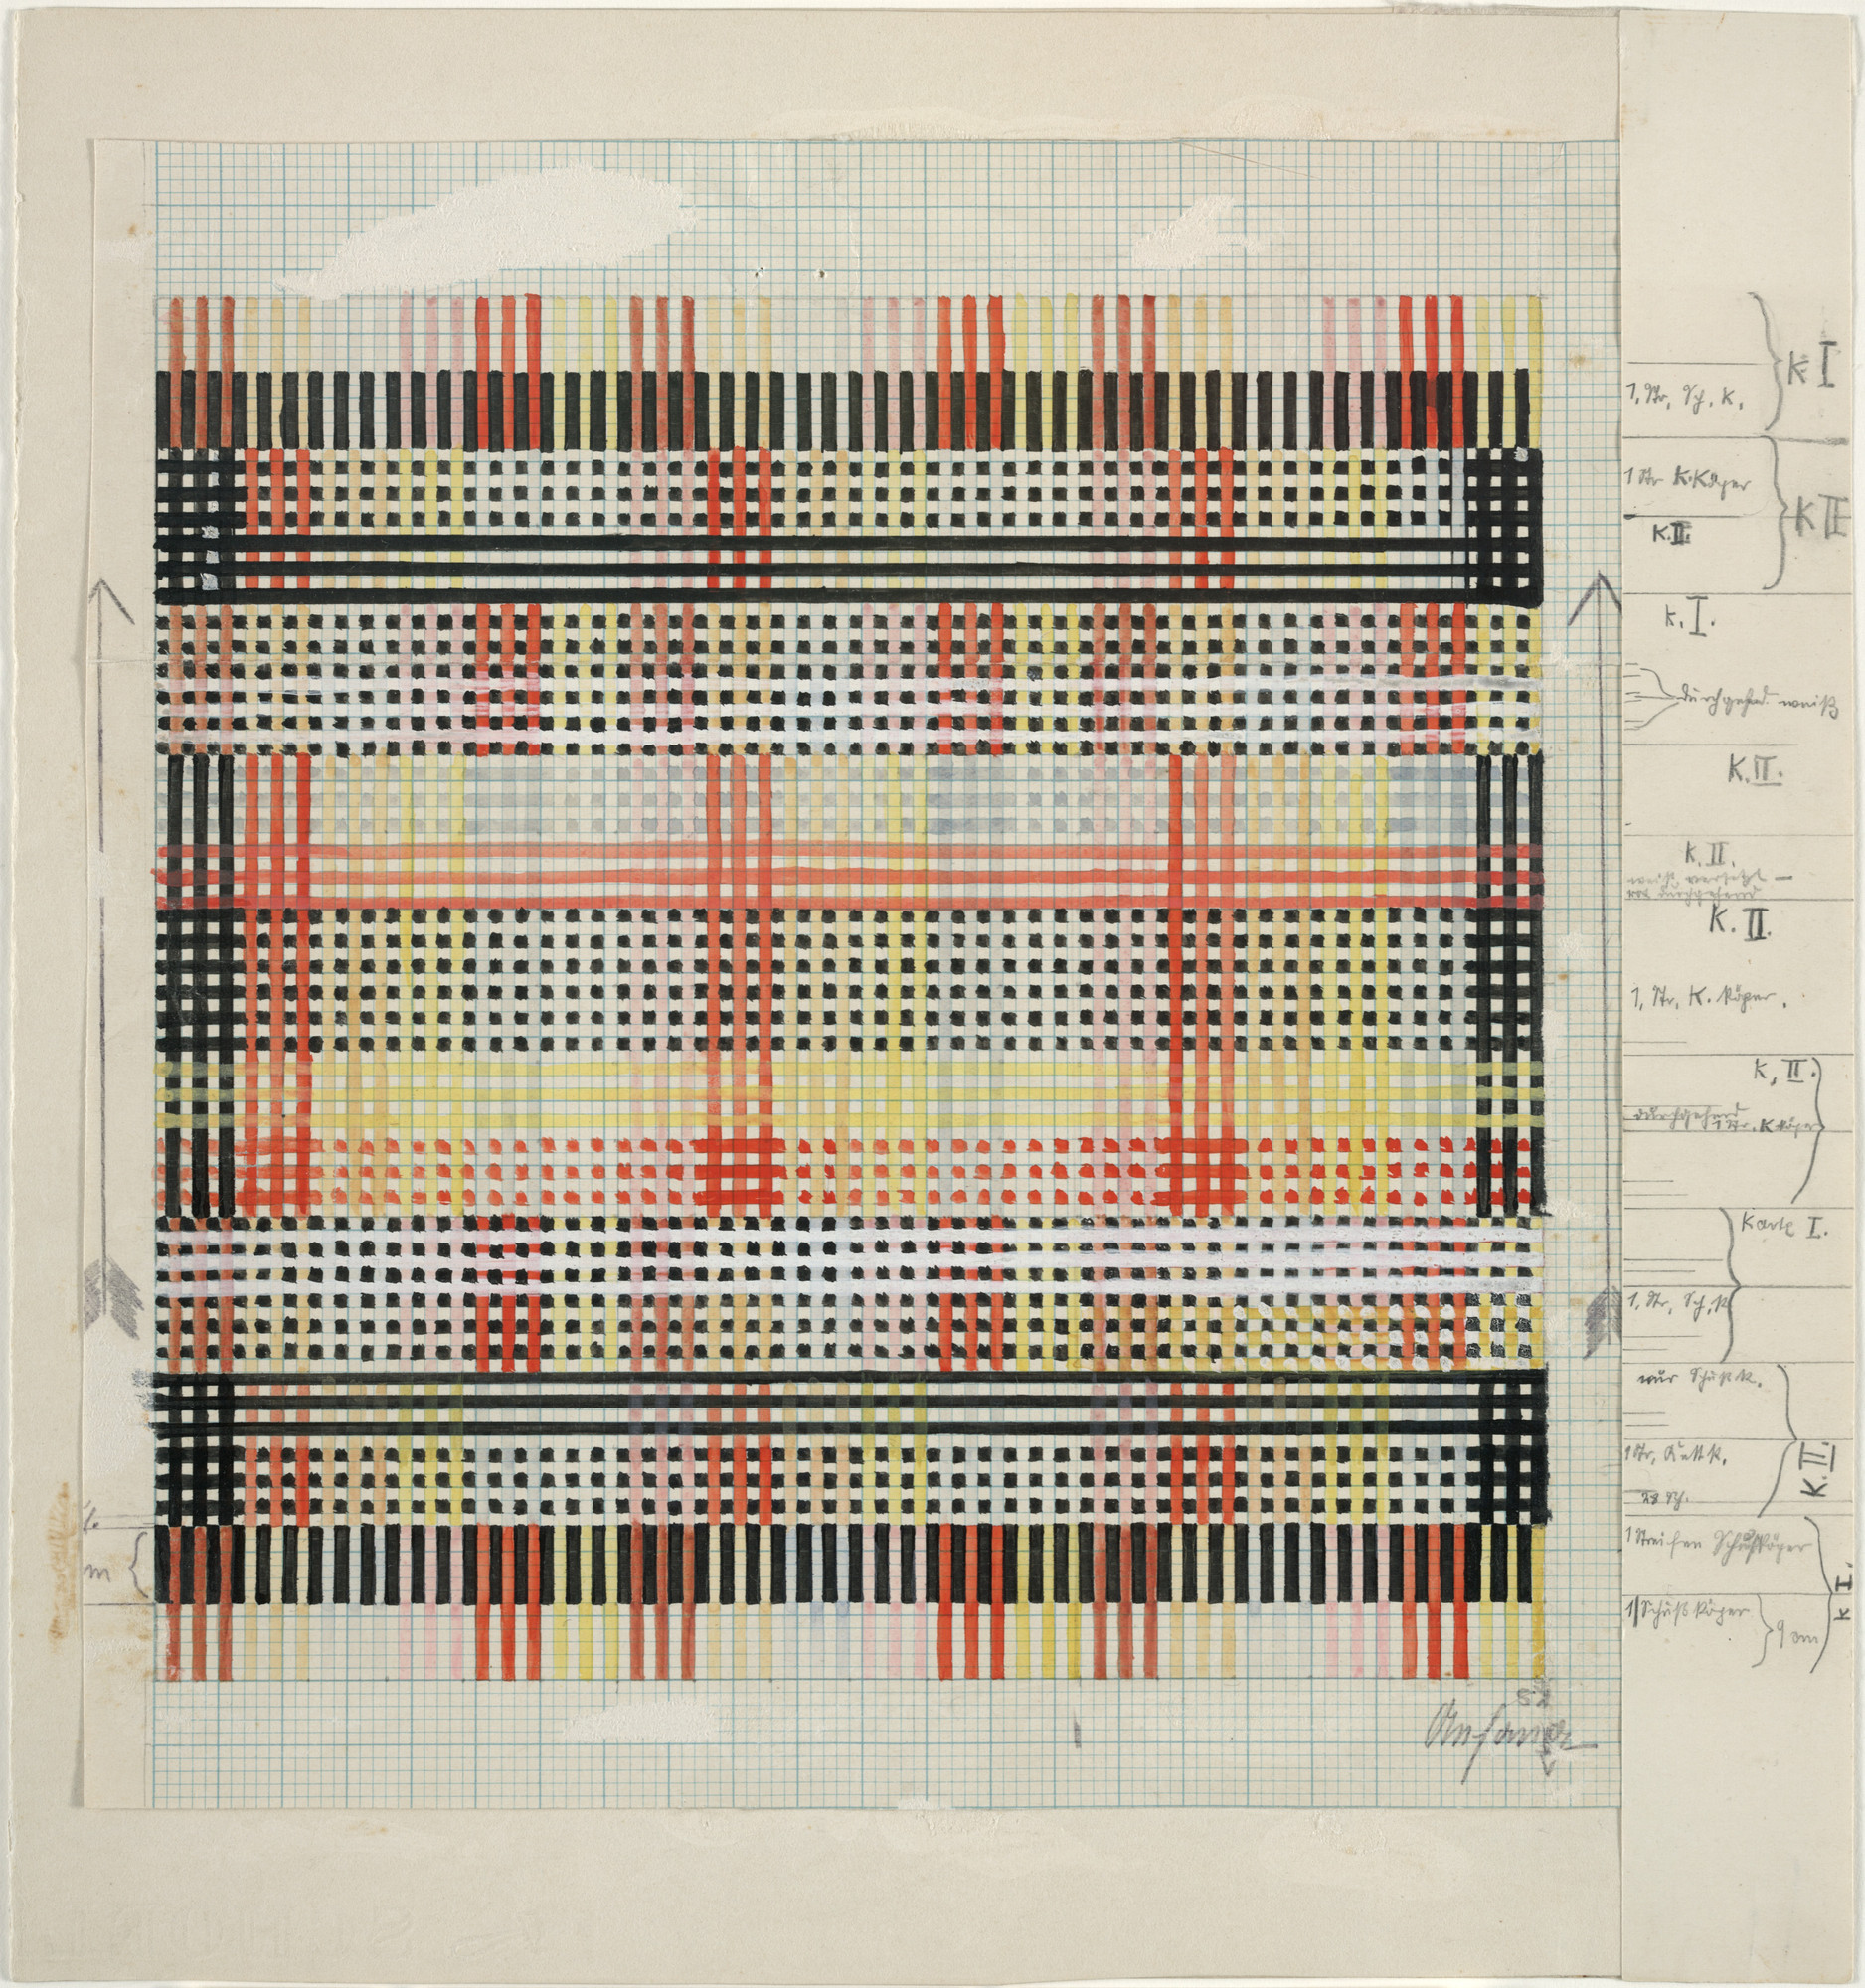 Anni Albers. Design for Tablecloth. 1930